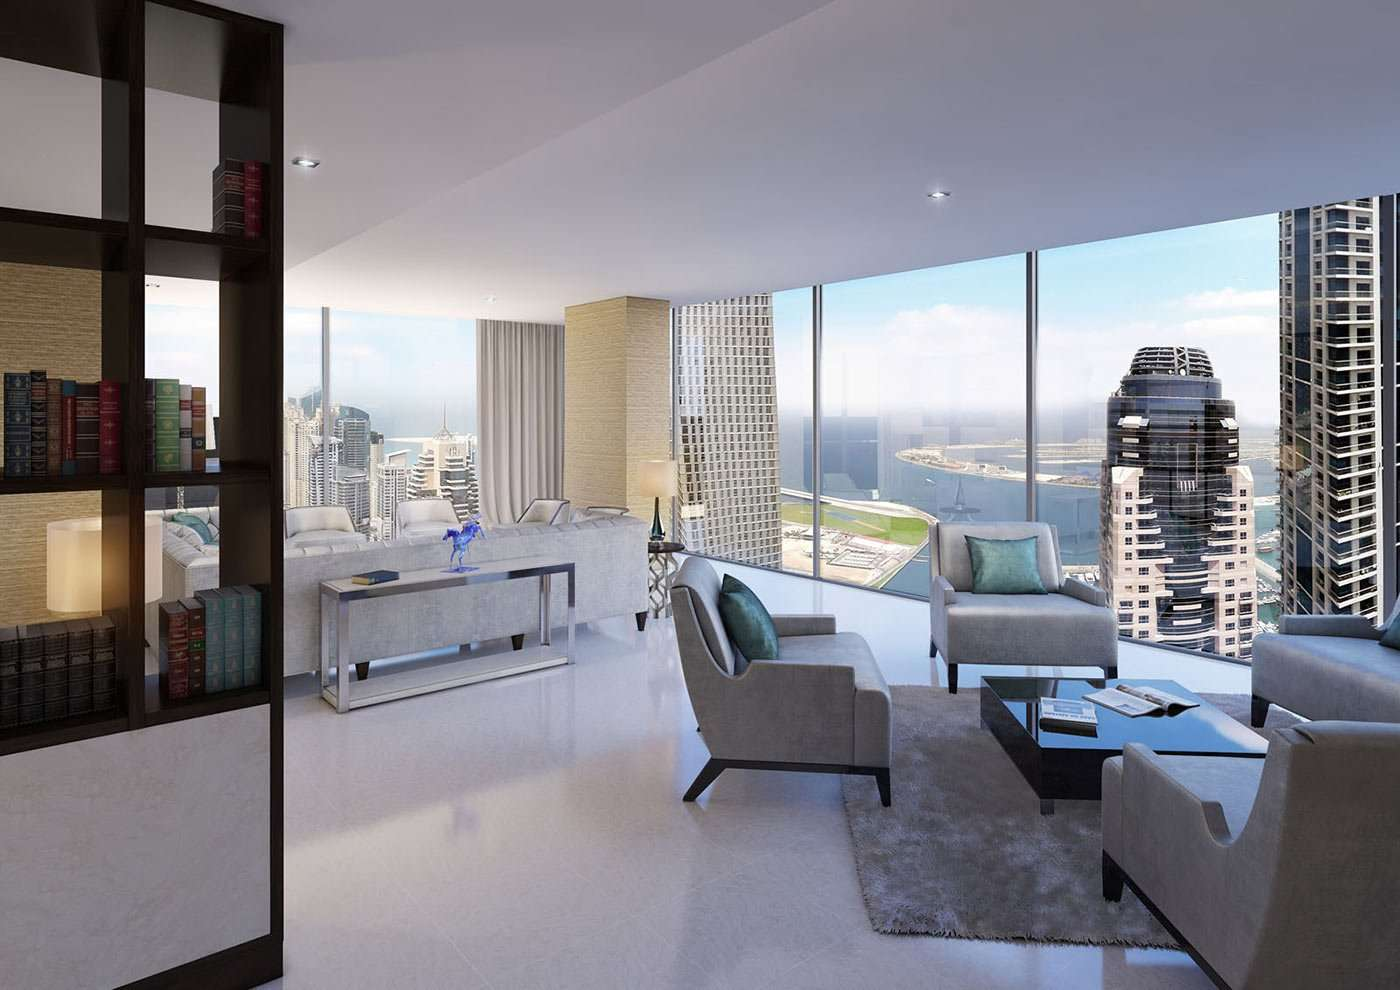 The Residences at Marina Gate II – 2-Bedroom Apartments